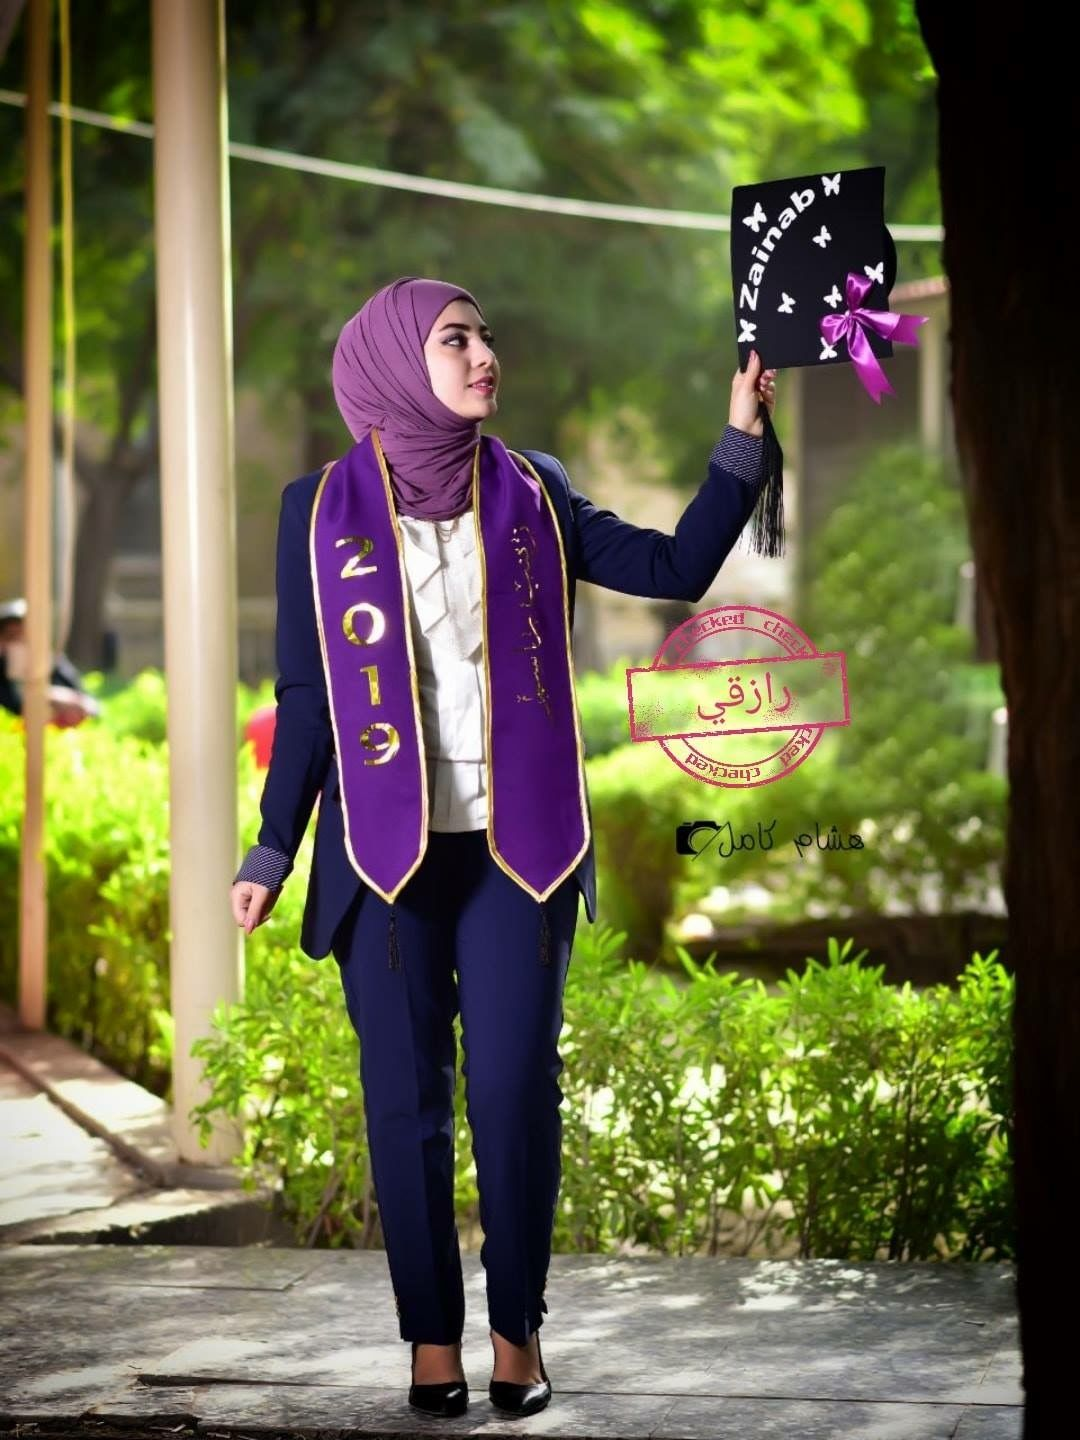 Pin By Zainab On افكار للتخرج Graduation Picture Poses Graduation Style Graduation Outfit